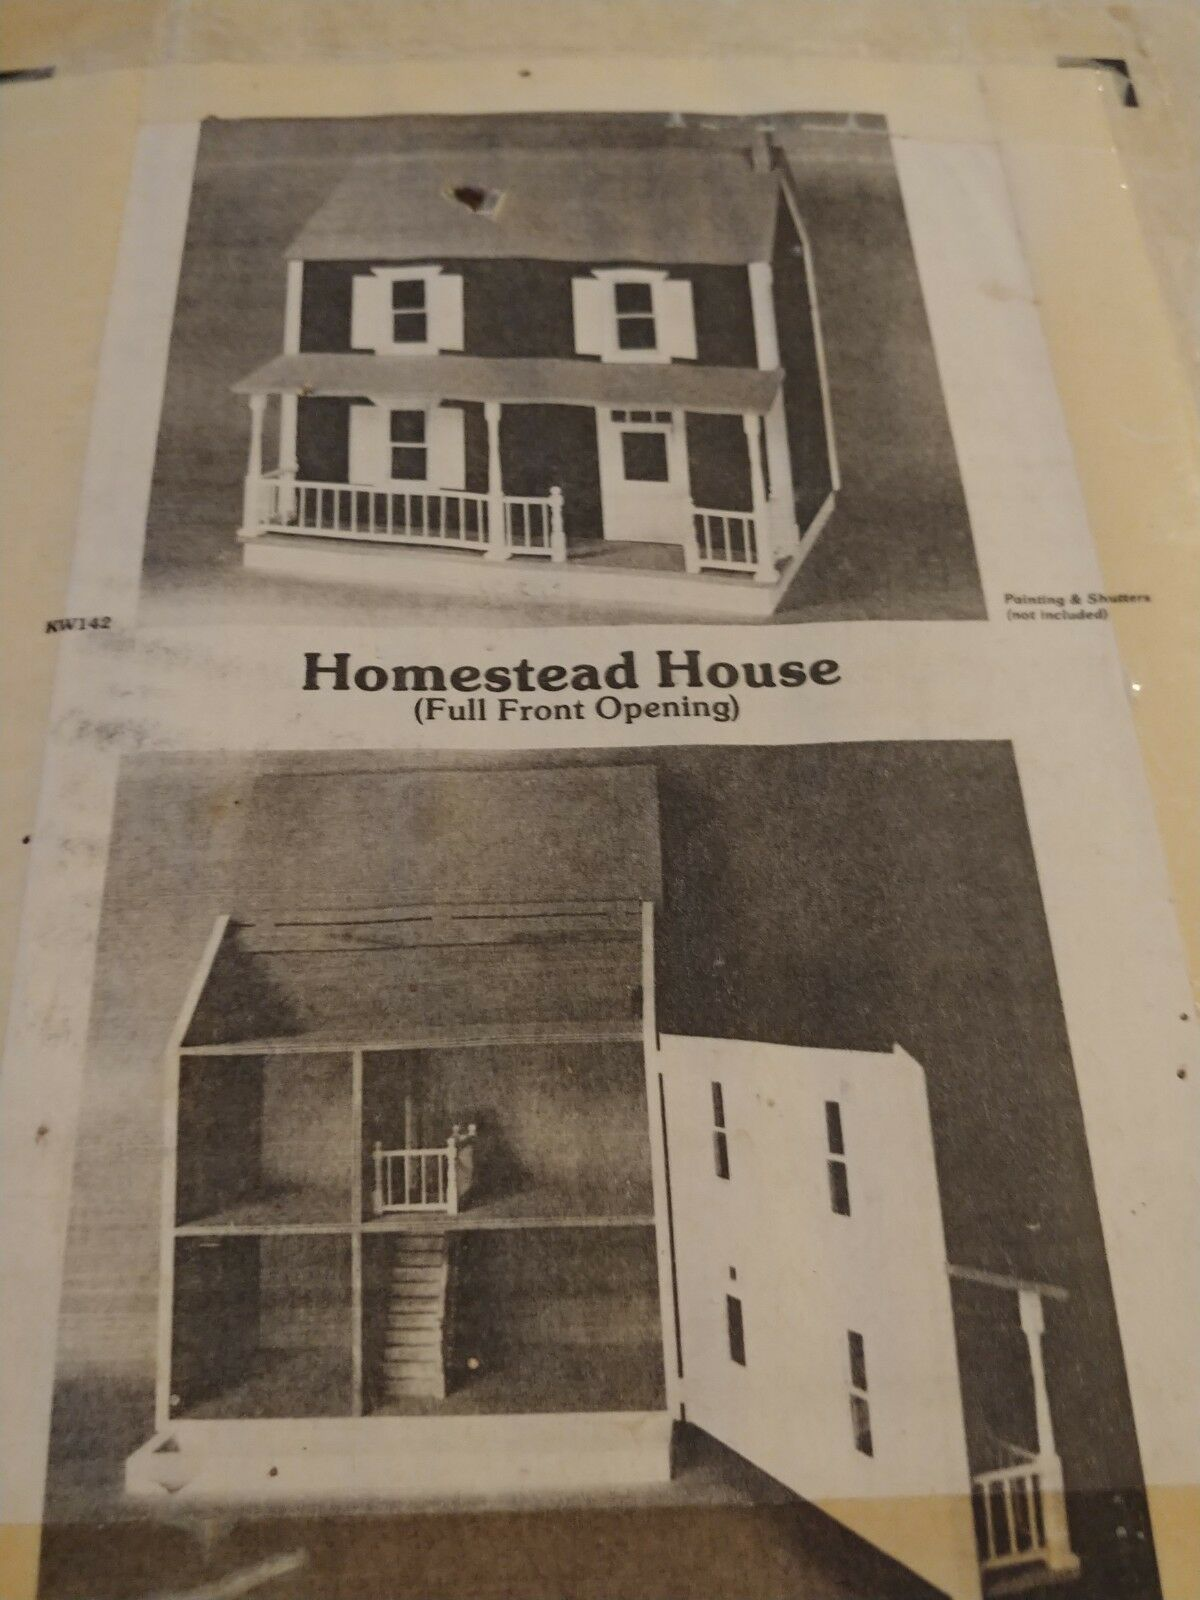 VINTAGE RARE HOFCO KW-142 Homestead House Dollhouse Kit  COMPLETE IN open BOX